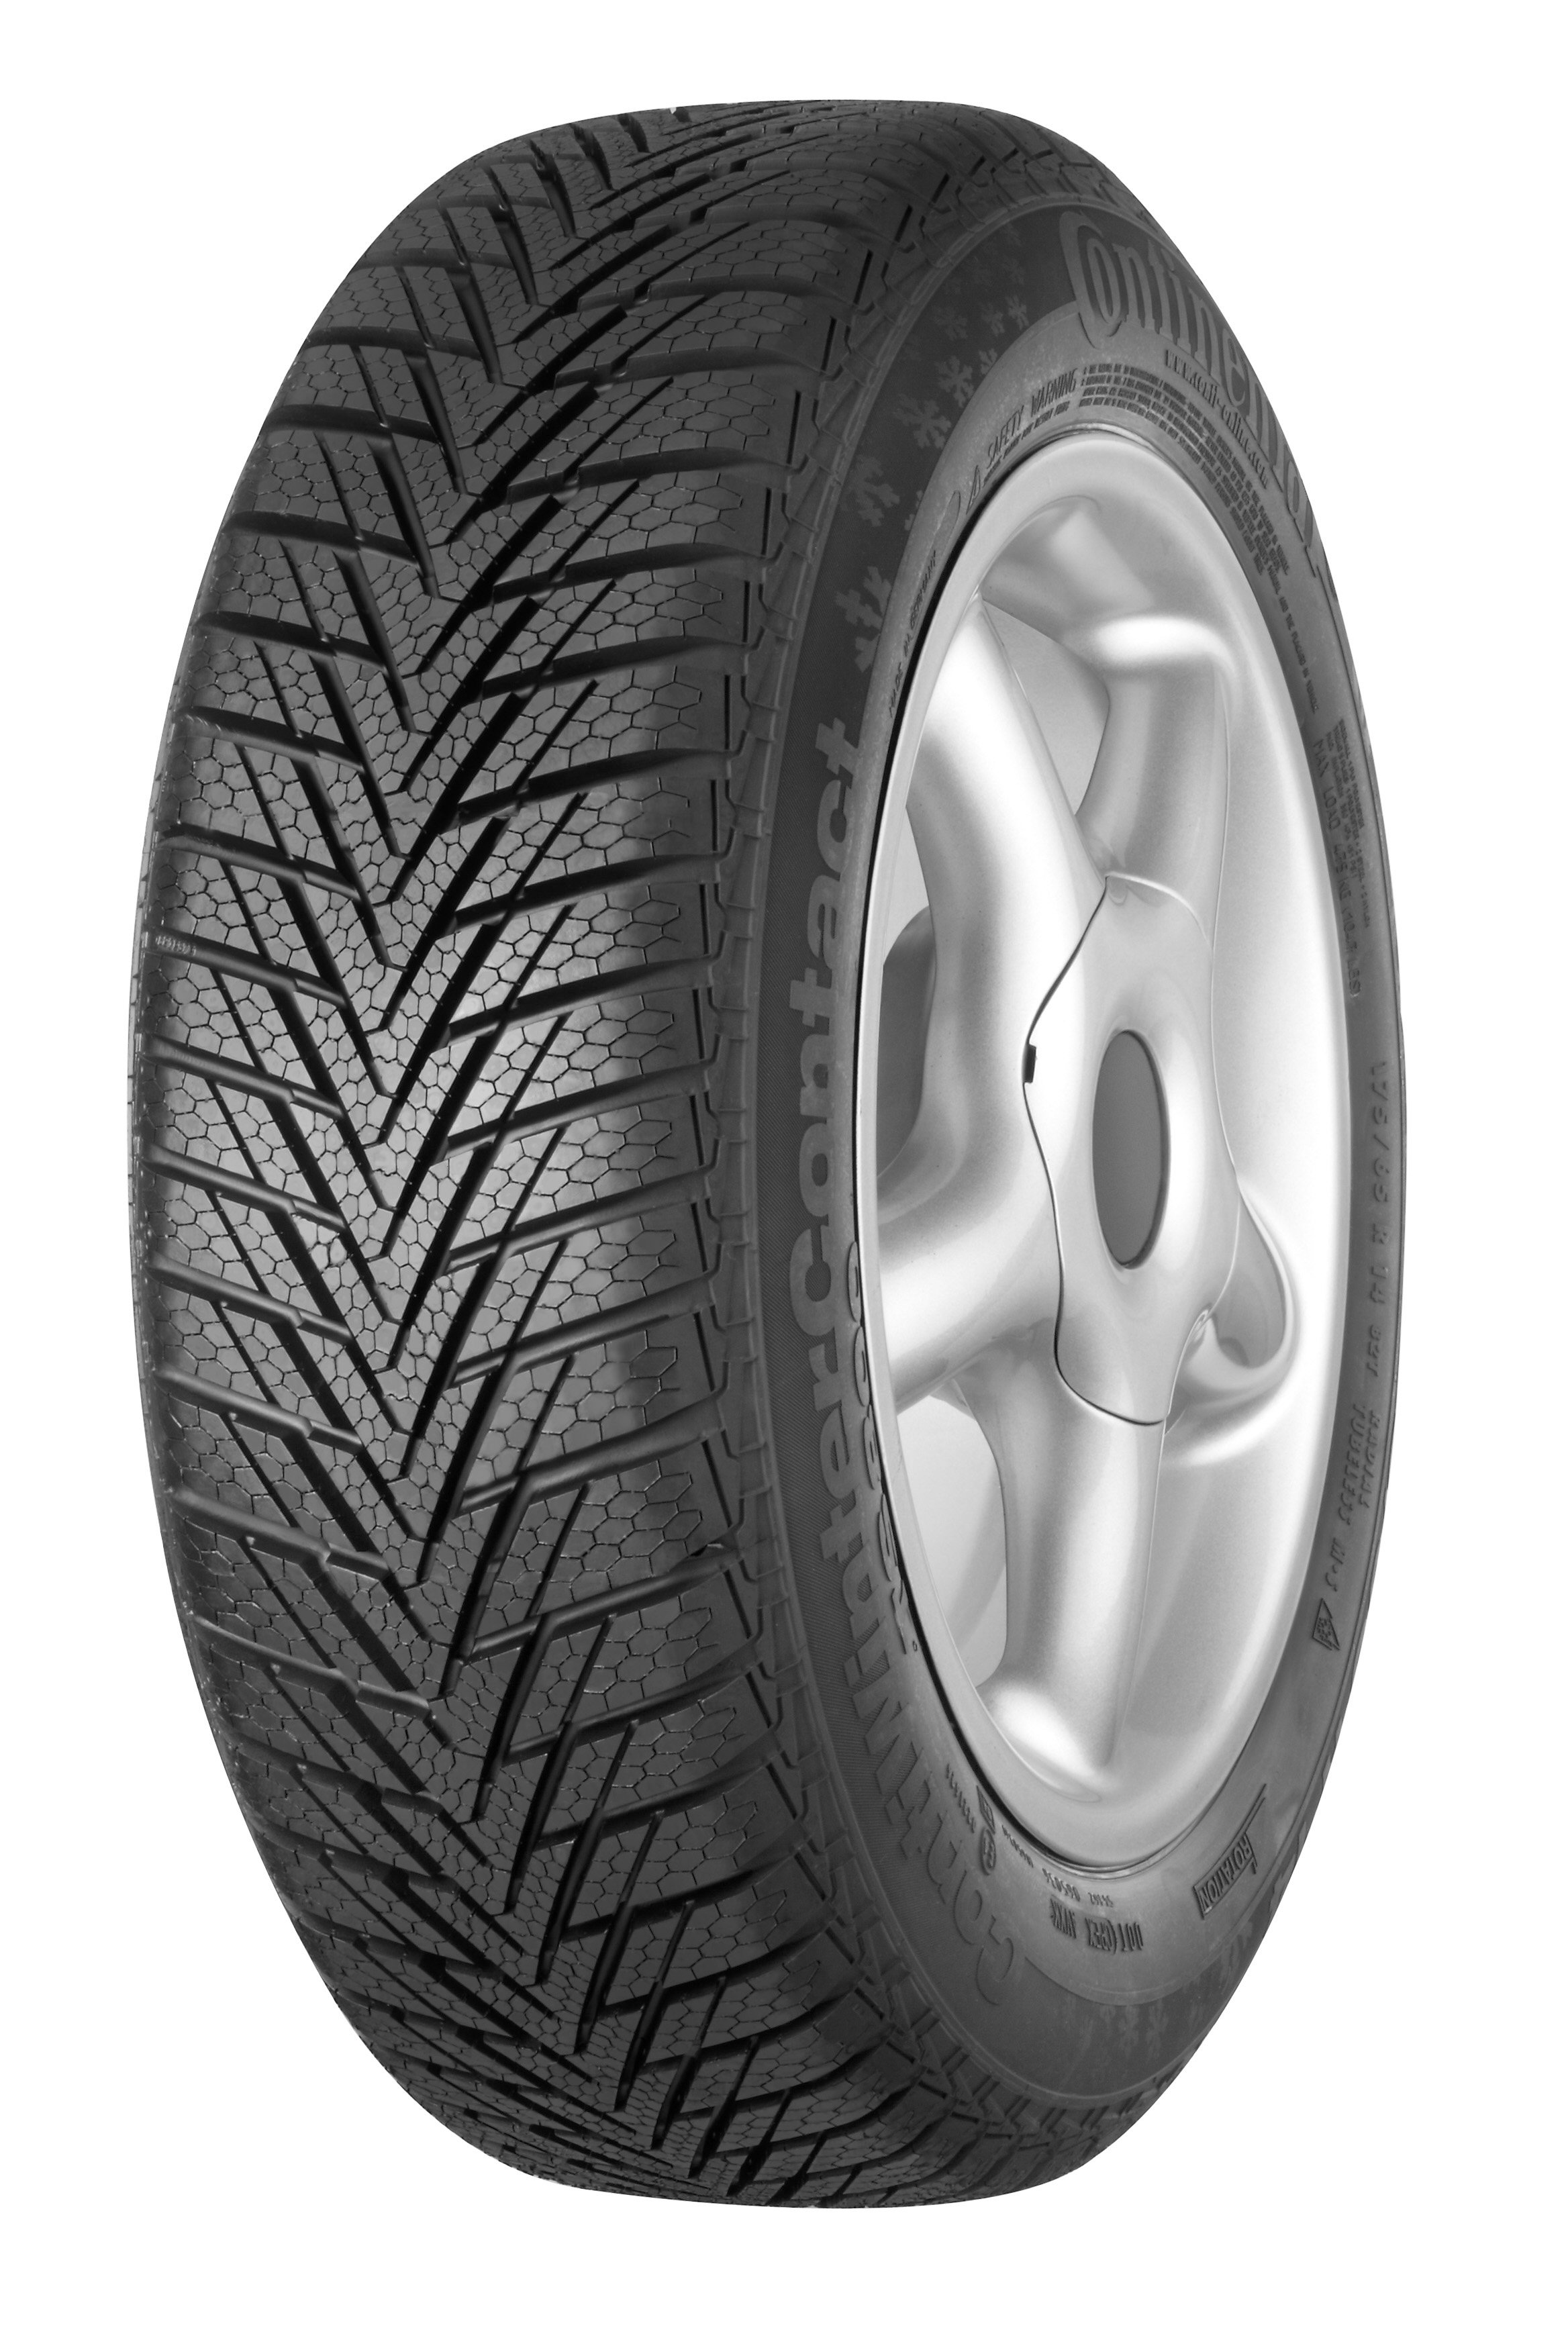 155/70R13 75T, Continental, ContiWinterContact TS 800